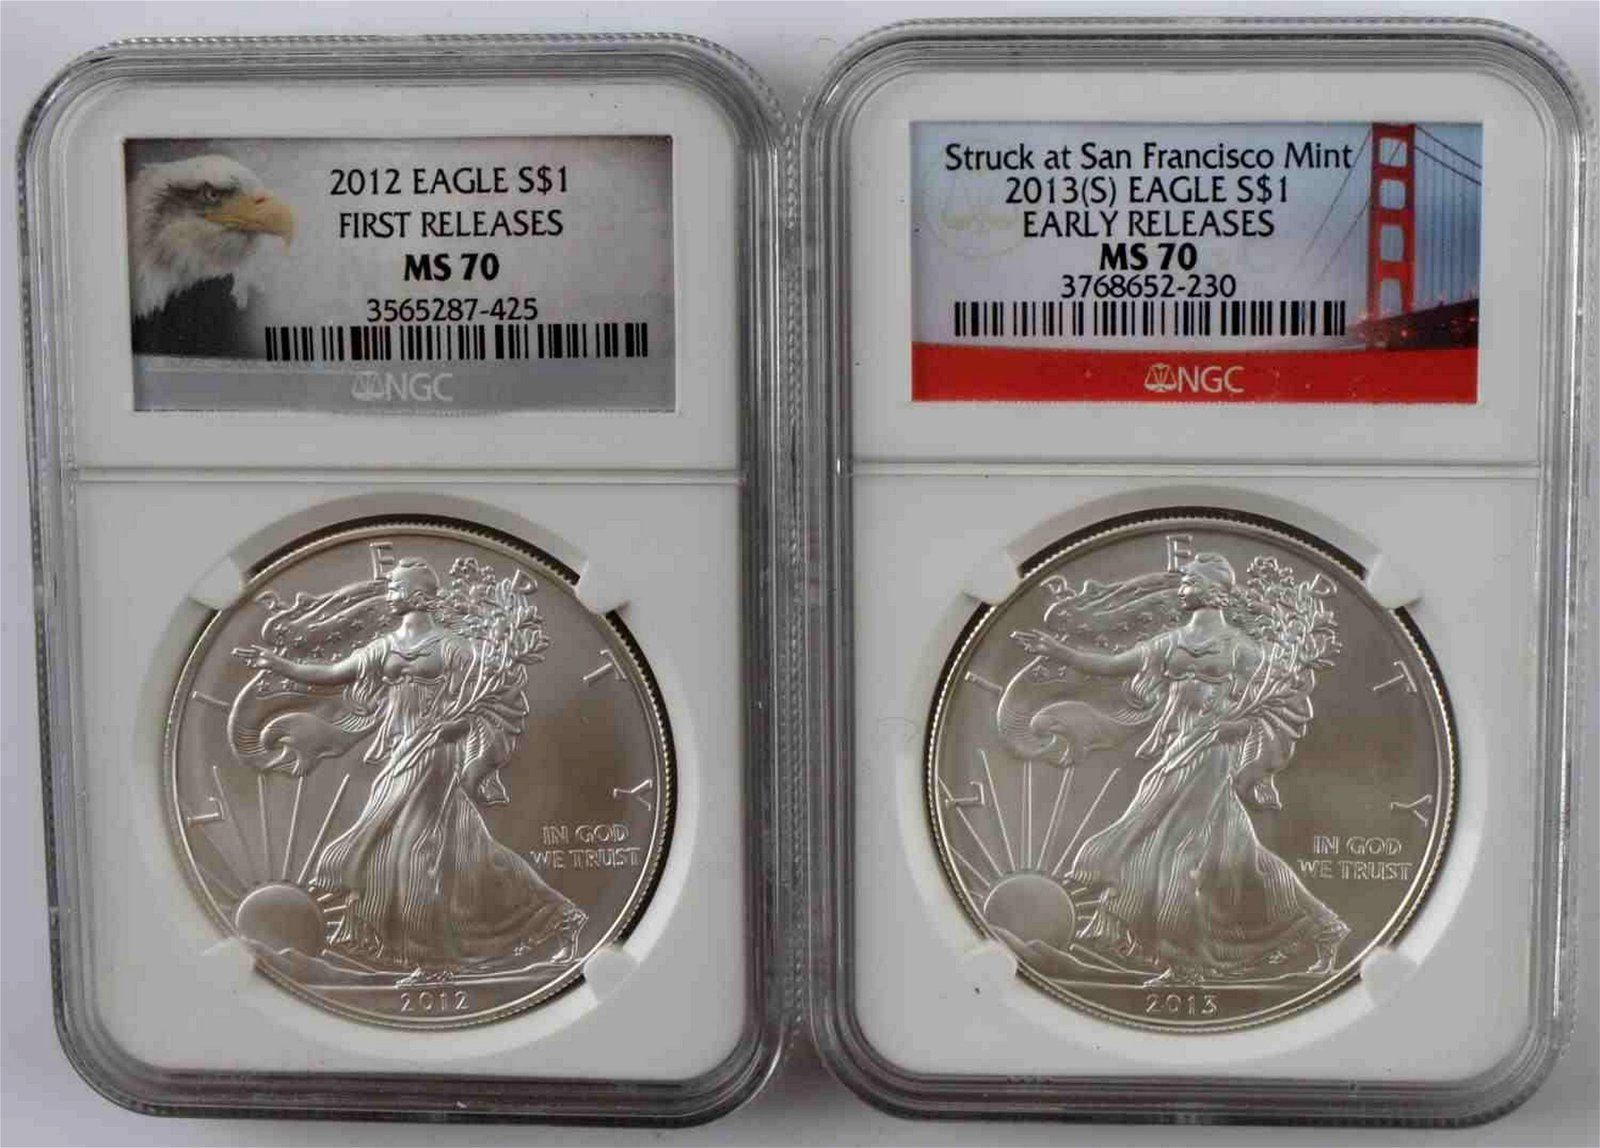 LOT OF 2 MS70 NGC AMERICAN SILVER EAGLE COINS